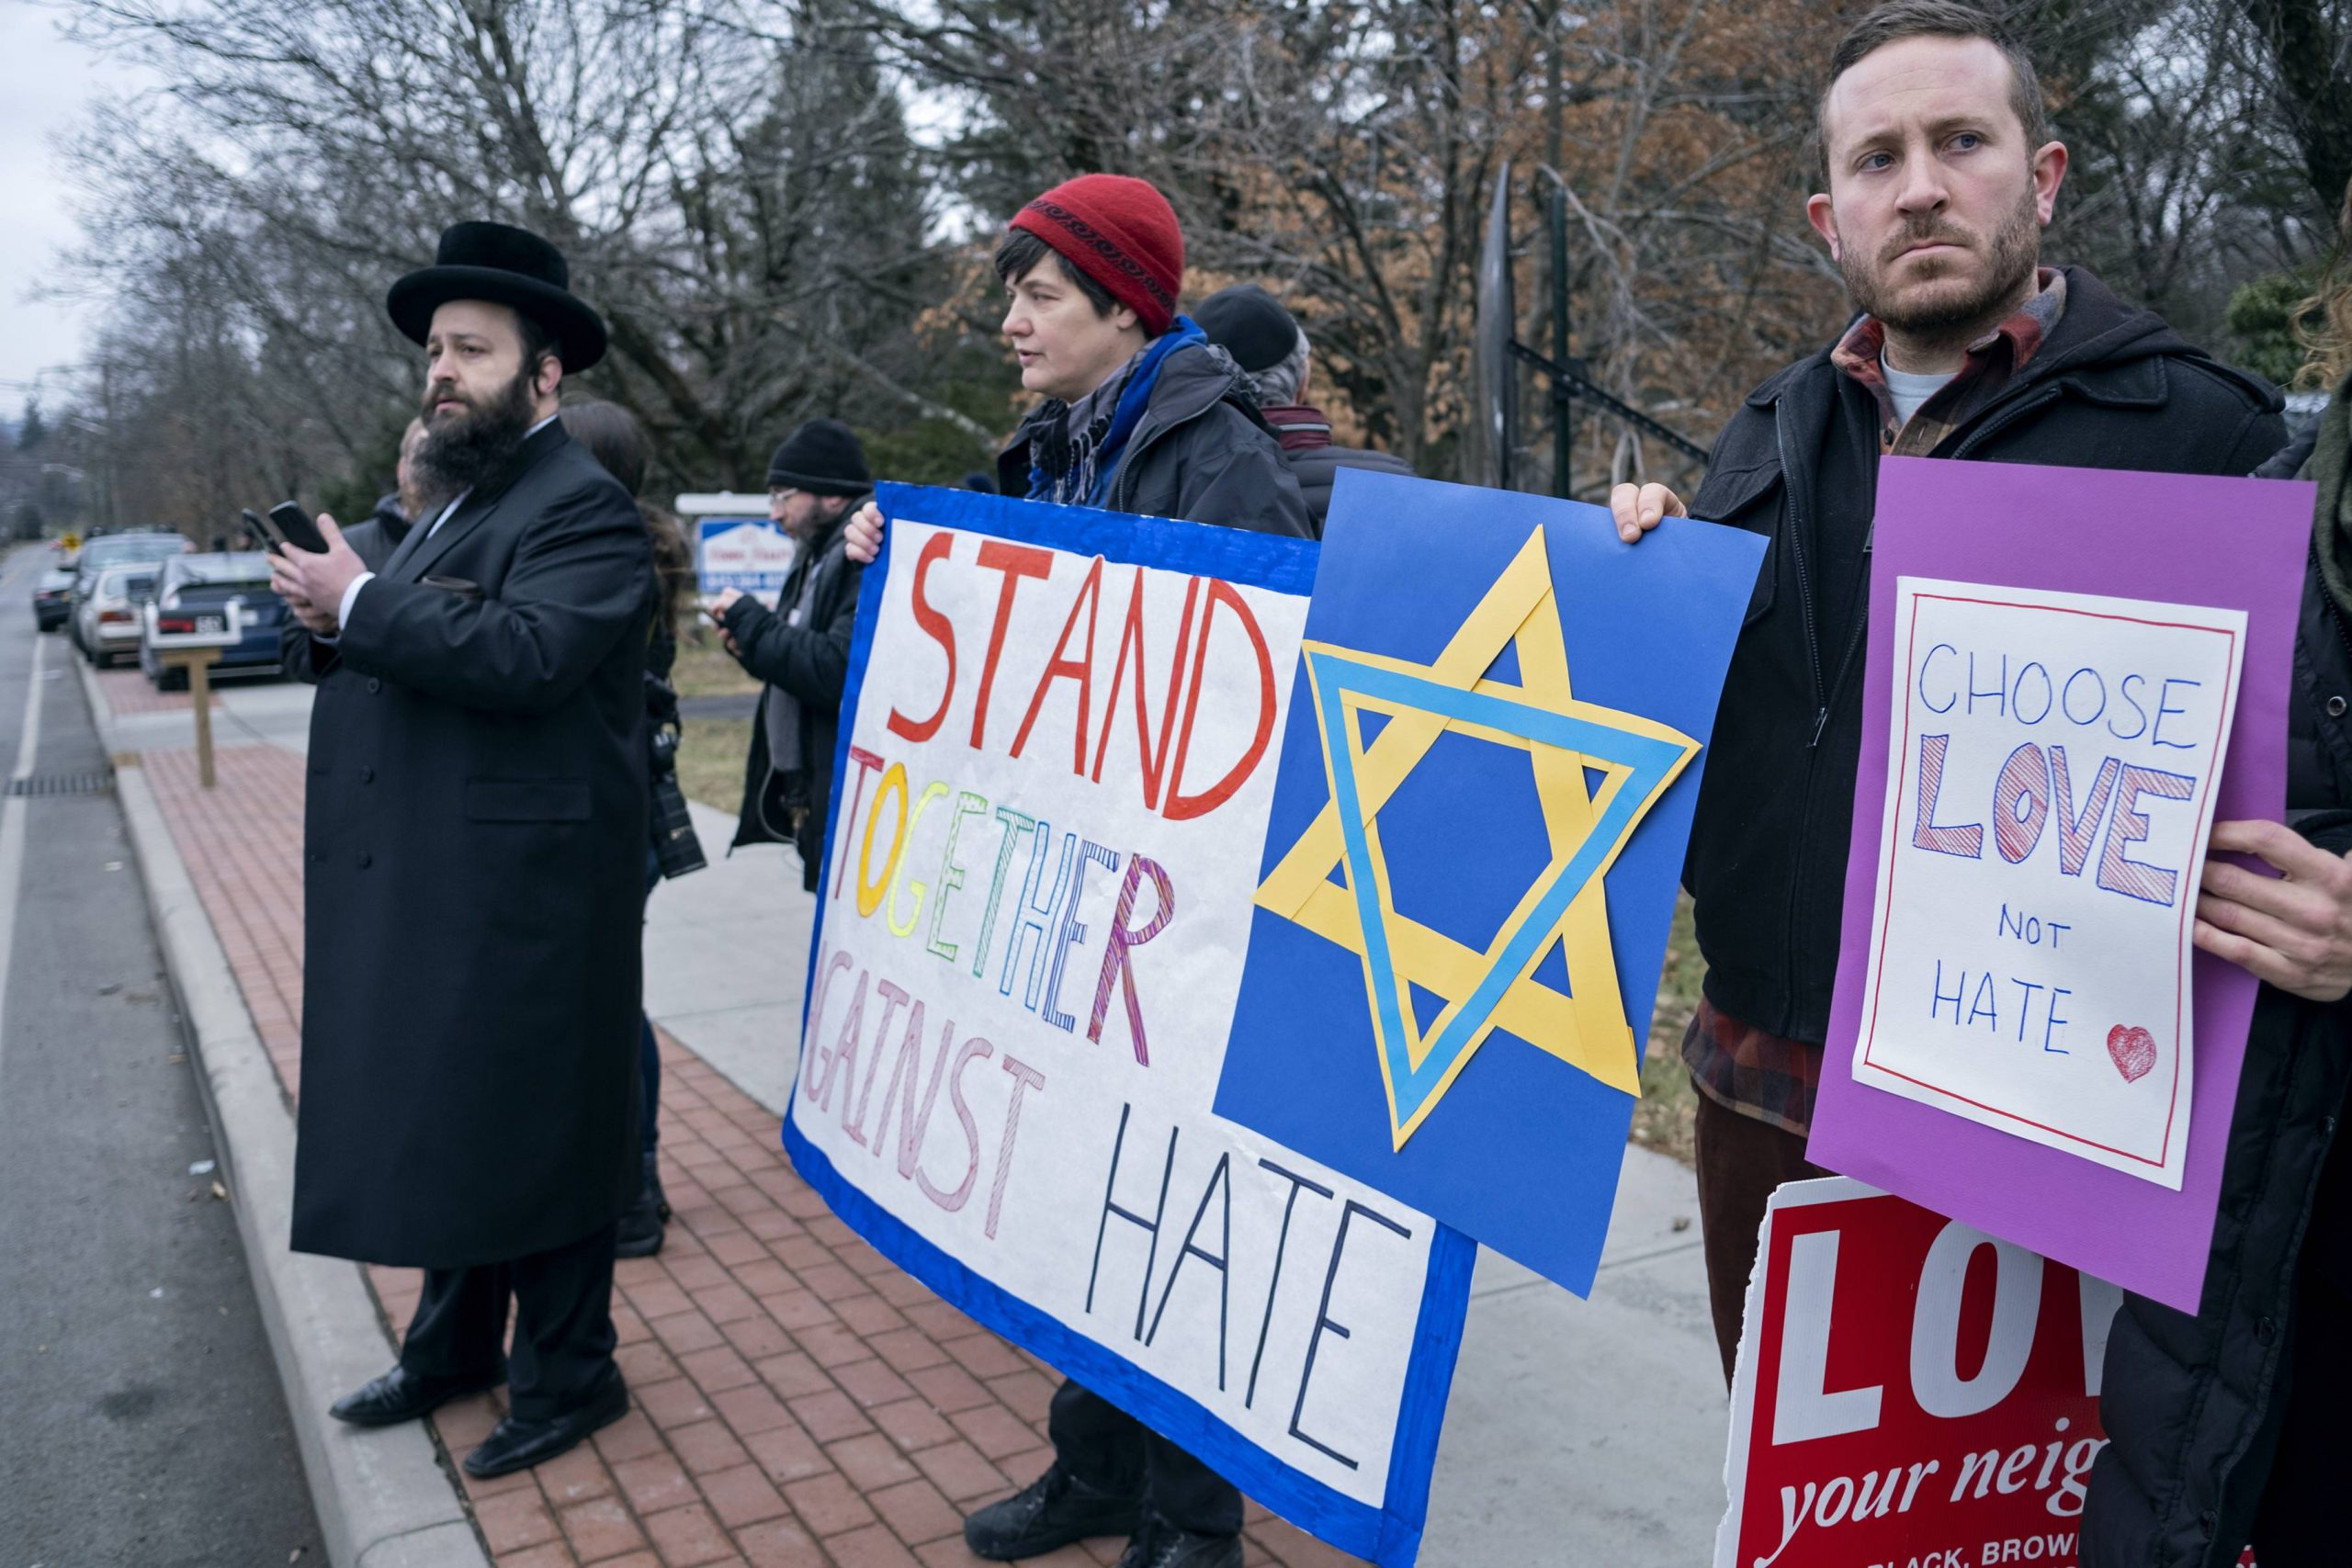 WASHINGTON POST: Jewish American groups appeal to Biden White House after string of antisemitic attacks related to Israel